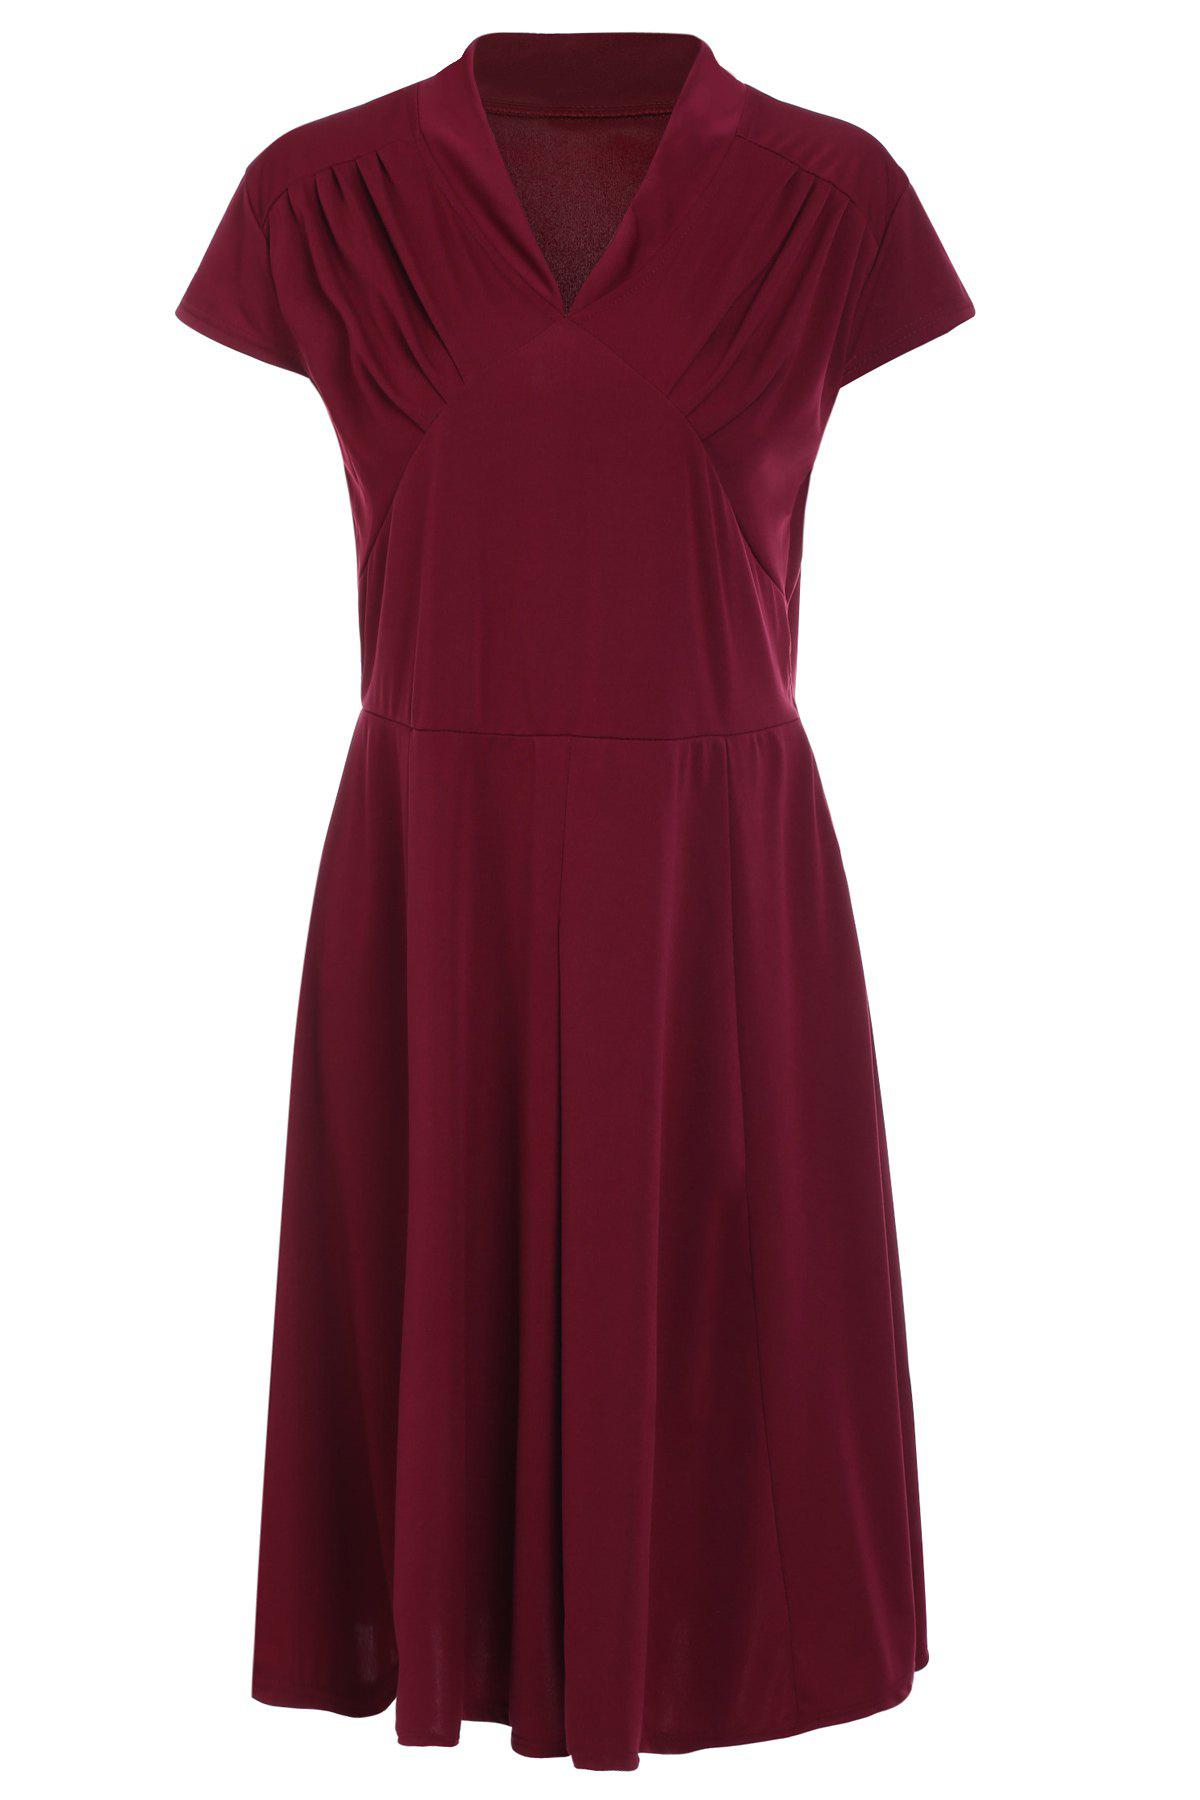 Retro Style V-Neck Wine Red 1940s Swing DressWOMEN<br><br>Size: XL; Color: WINE RED; Style: Vintage; Material: Cotton Blend; Silhouette: Ball Gown; Dresses Length: Mid-Calf; Neckline: V-Neck; Sleeve Length: Short Sleeves; Pattern Type: Solid; With Belt: No; Season: Summer; Weight: 0.570kg; Package Contents: 1 x Dress;